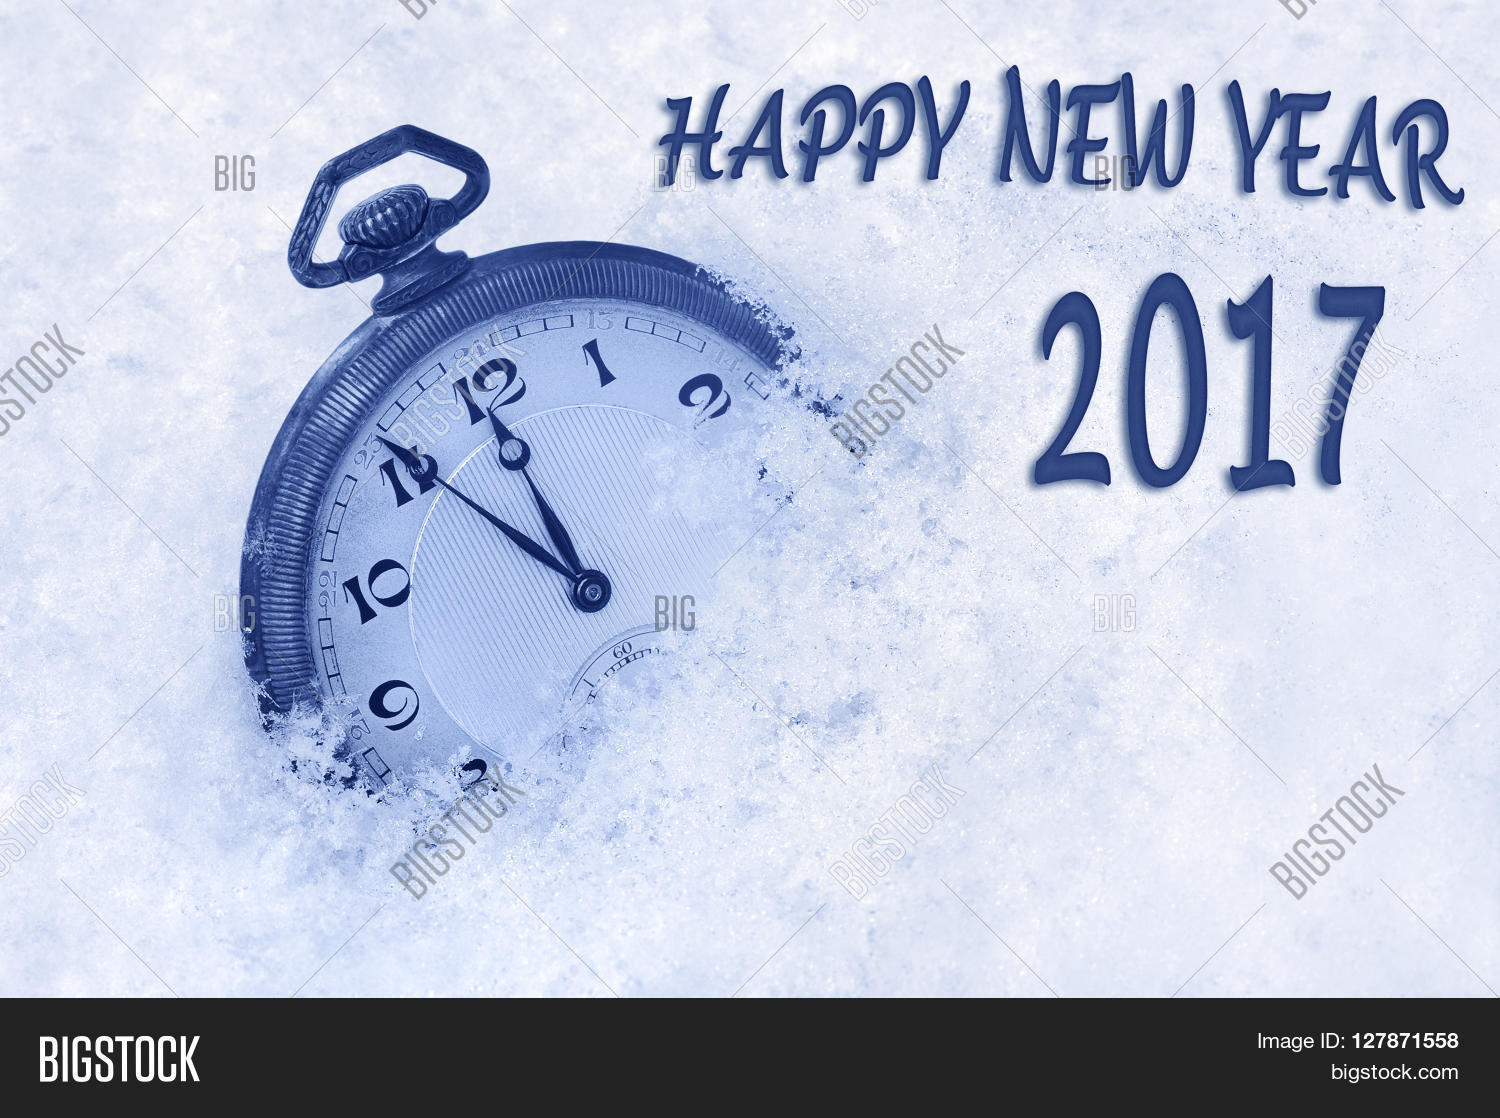 New year 2017 greeting image photo free trial bigstock new year 2017 greeting in english language pocket watch in snow happy new year m4hsunfo